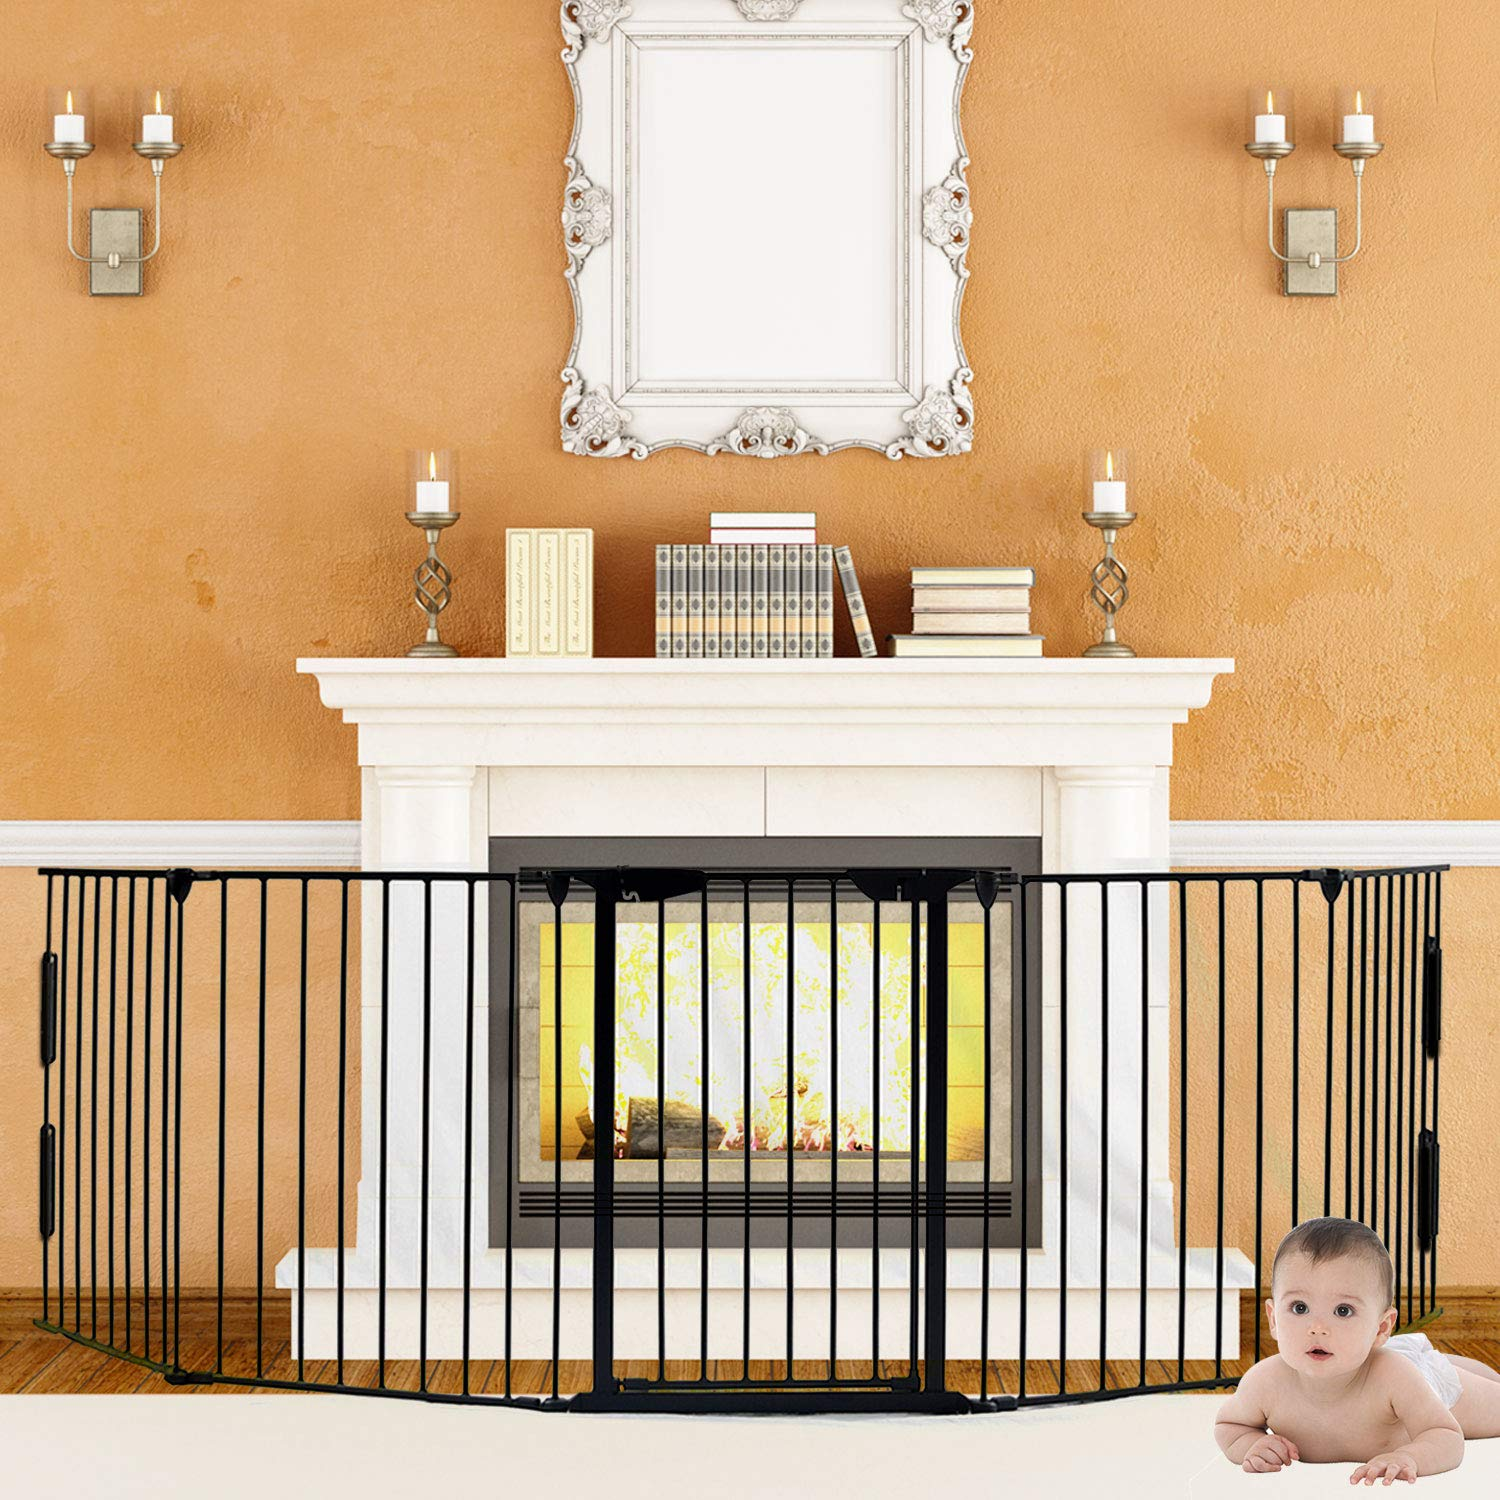 5-in-1 Fireplace Fence, Wide Barrier Gate Baby Safety Fence with Walk-Through Doo r in Two Directions Extra Wide Gate for Indoor/Pet/Dog/Christmas Tree Enclosure, Includes 4 Pack of Wall Mounts